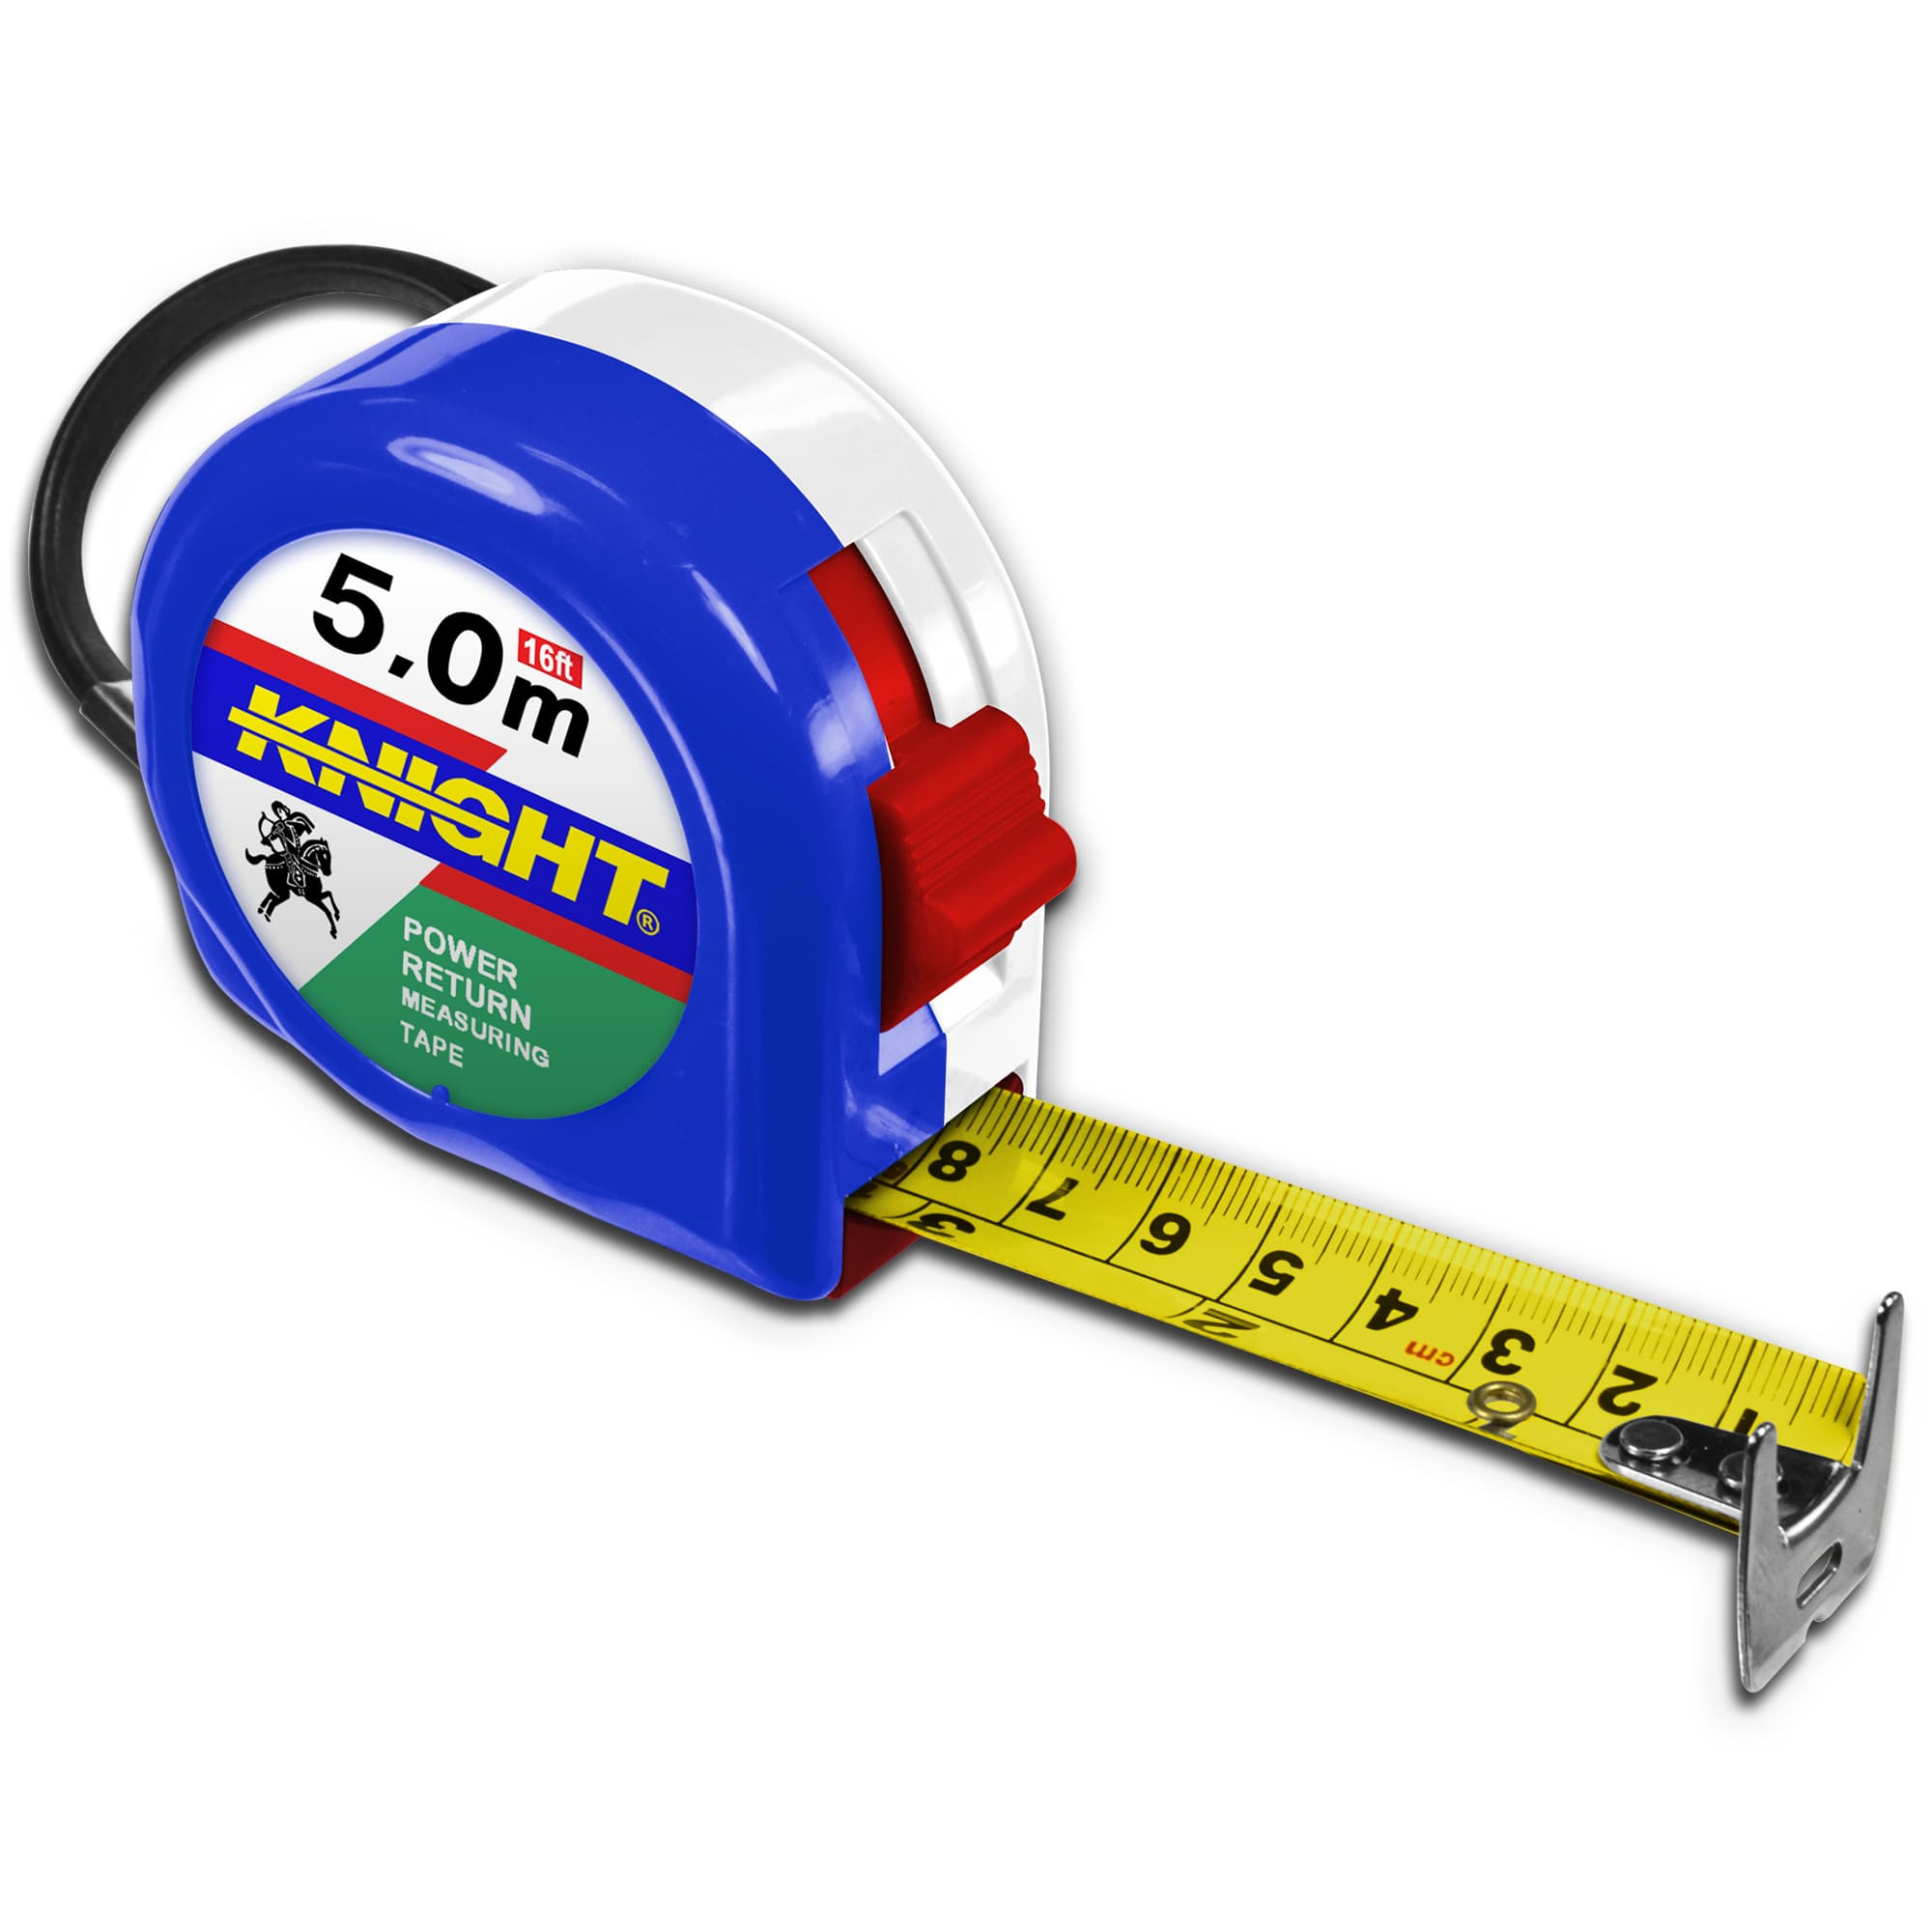 Craftsman Inch Metric Tape Measure